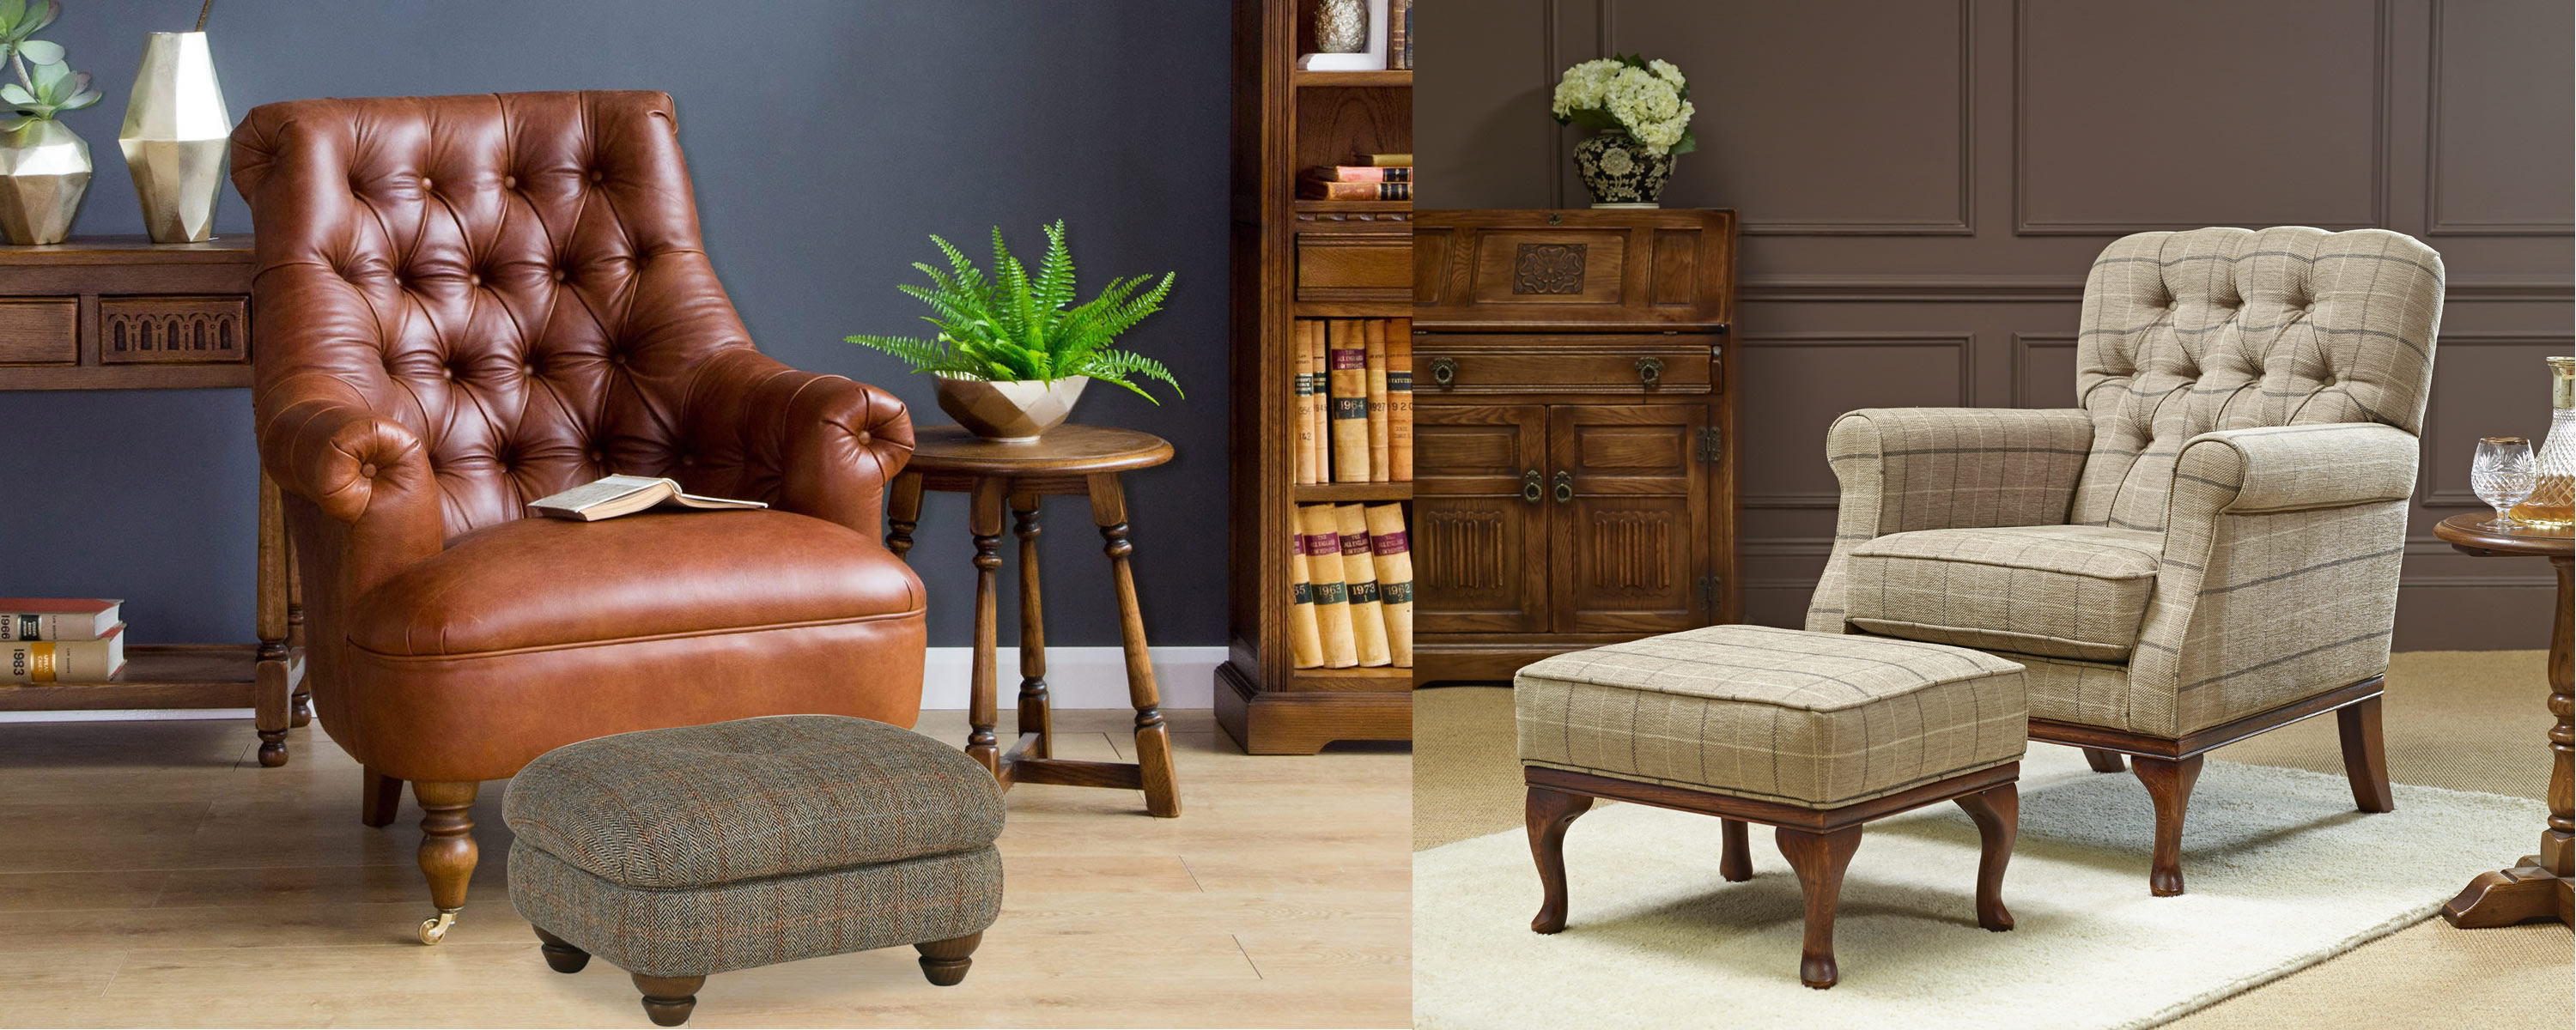 free footstool, free harris tweed footstool, mini footstool, footstool with fabric options